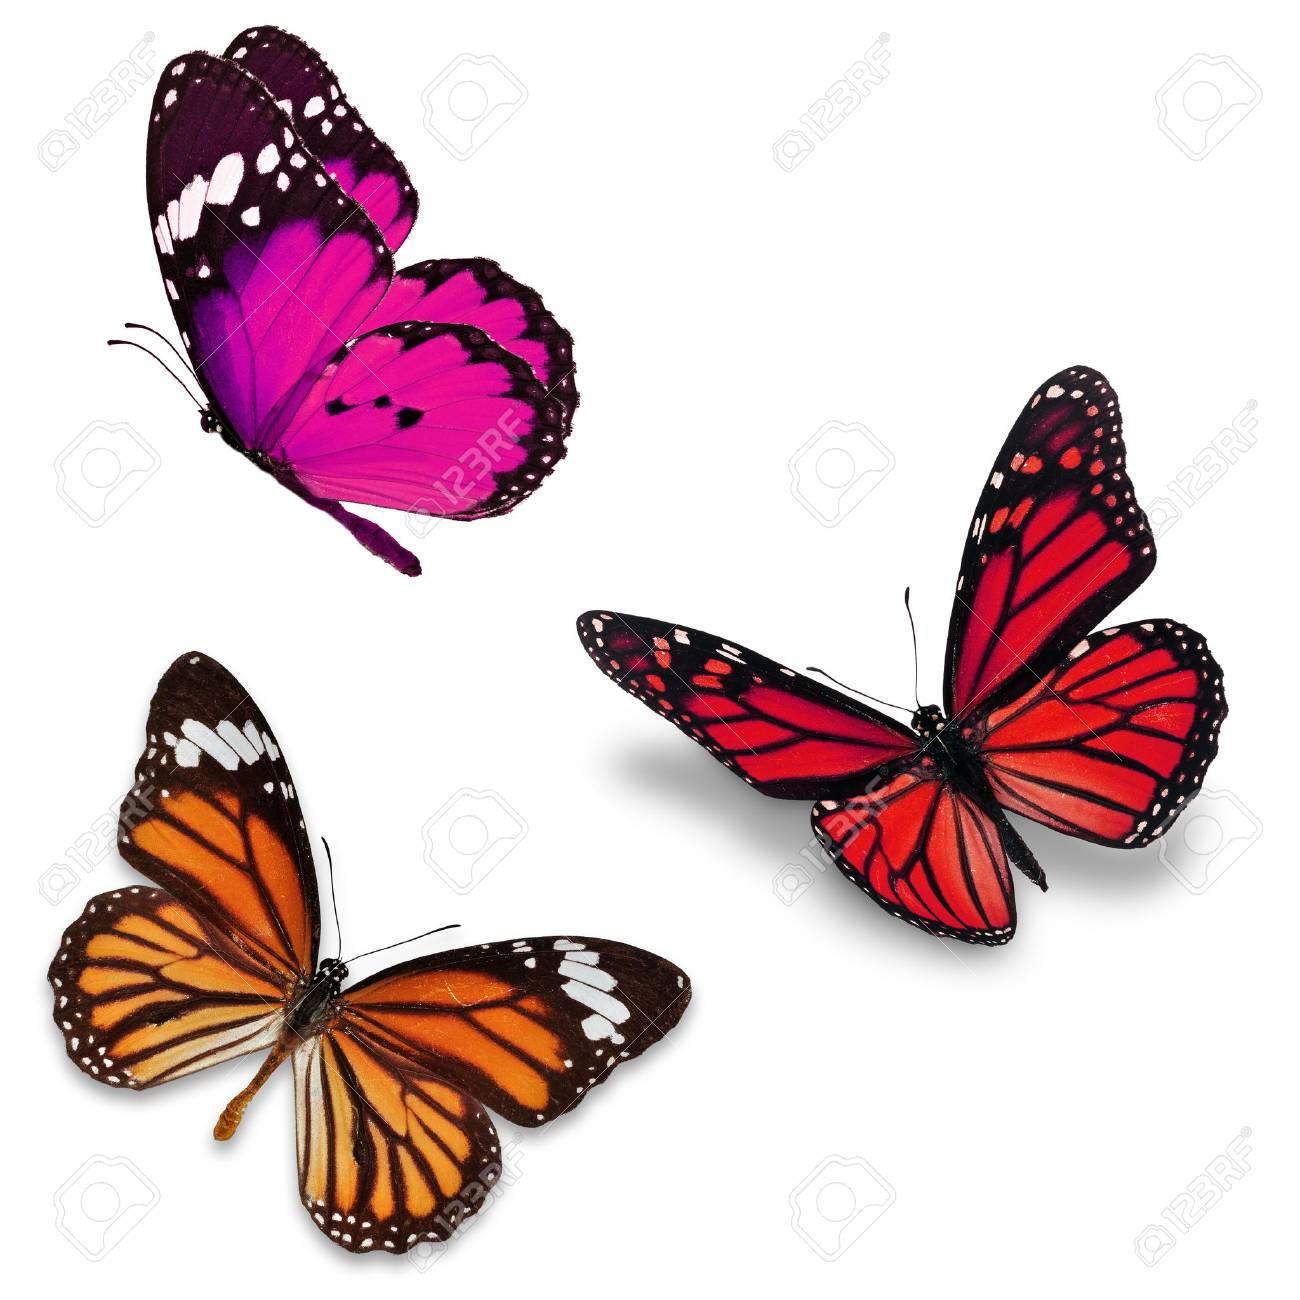 Three colorful butterfly, isolated on white background - 39084911